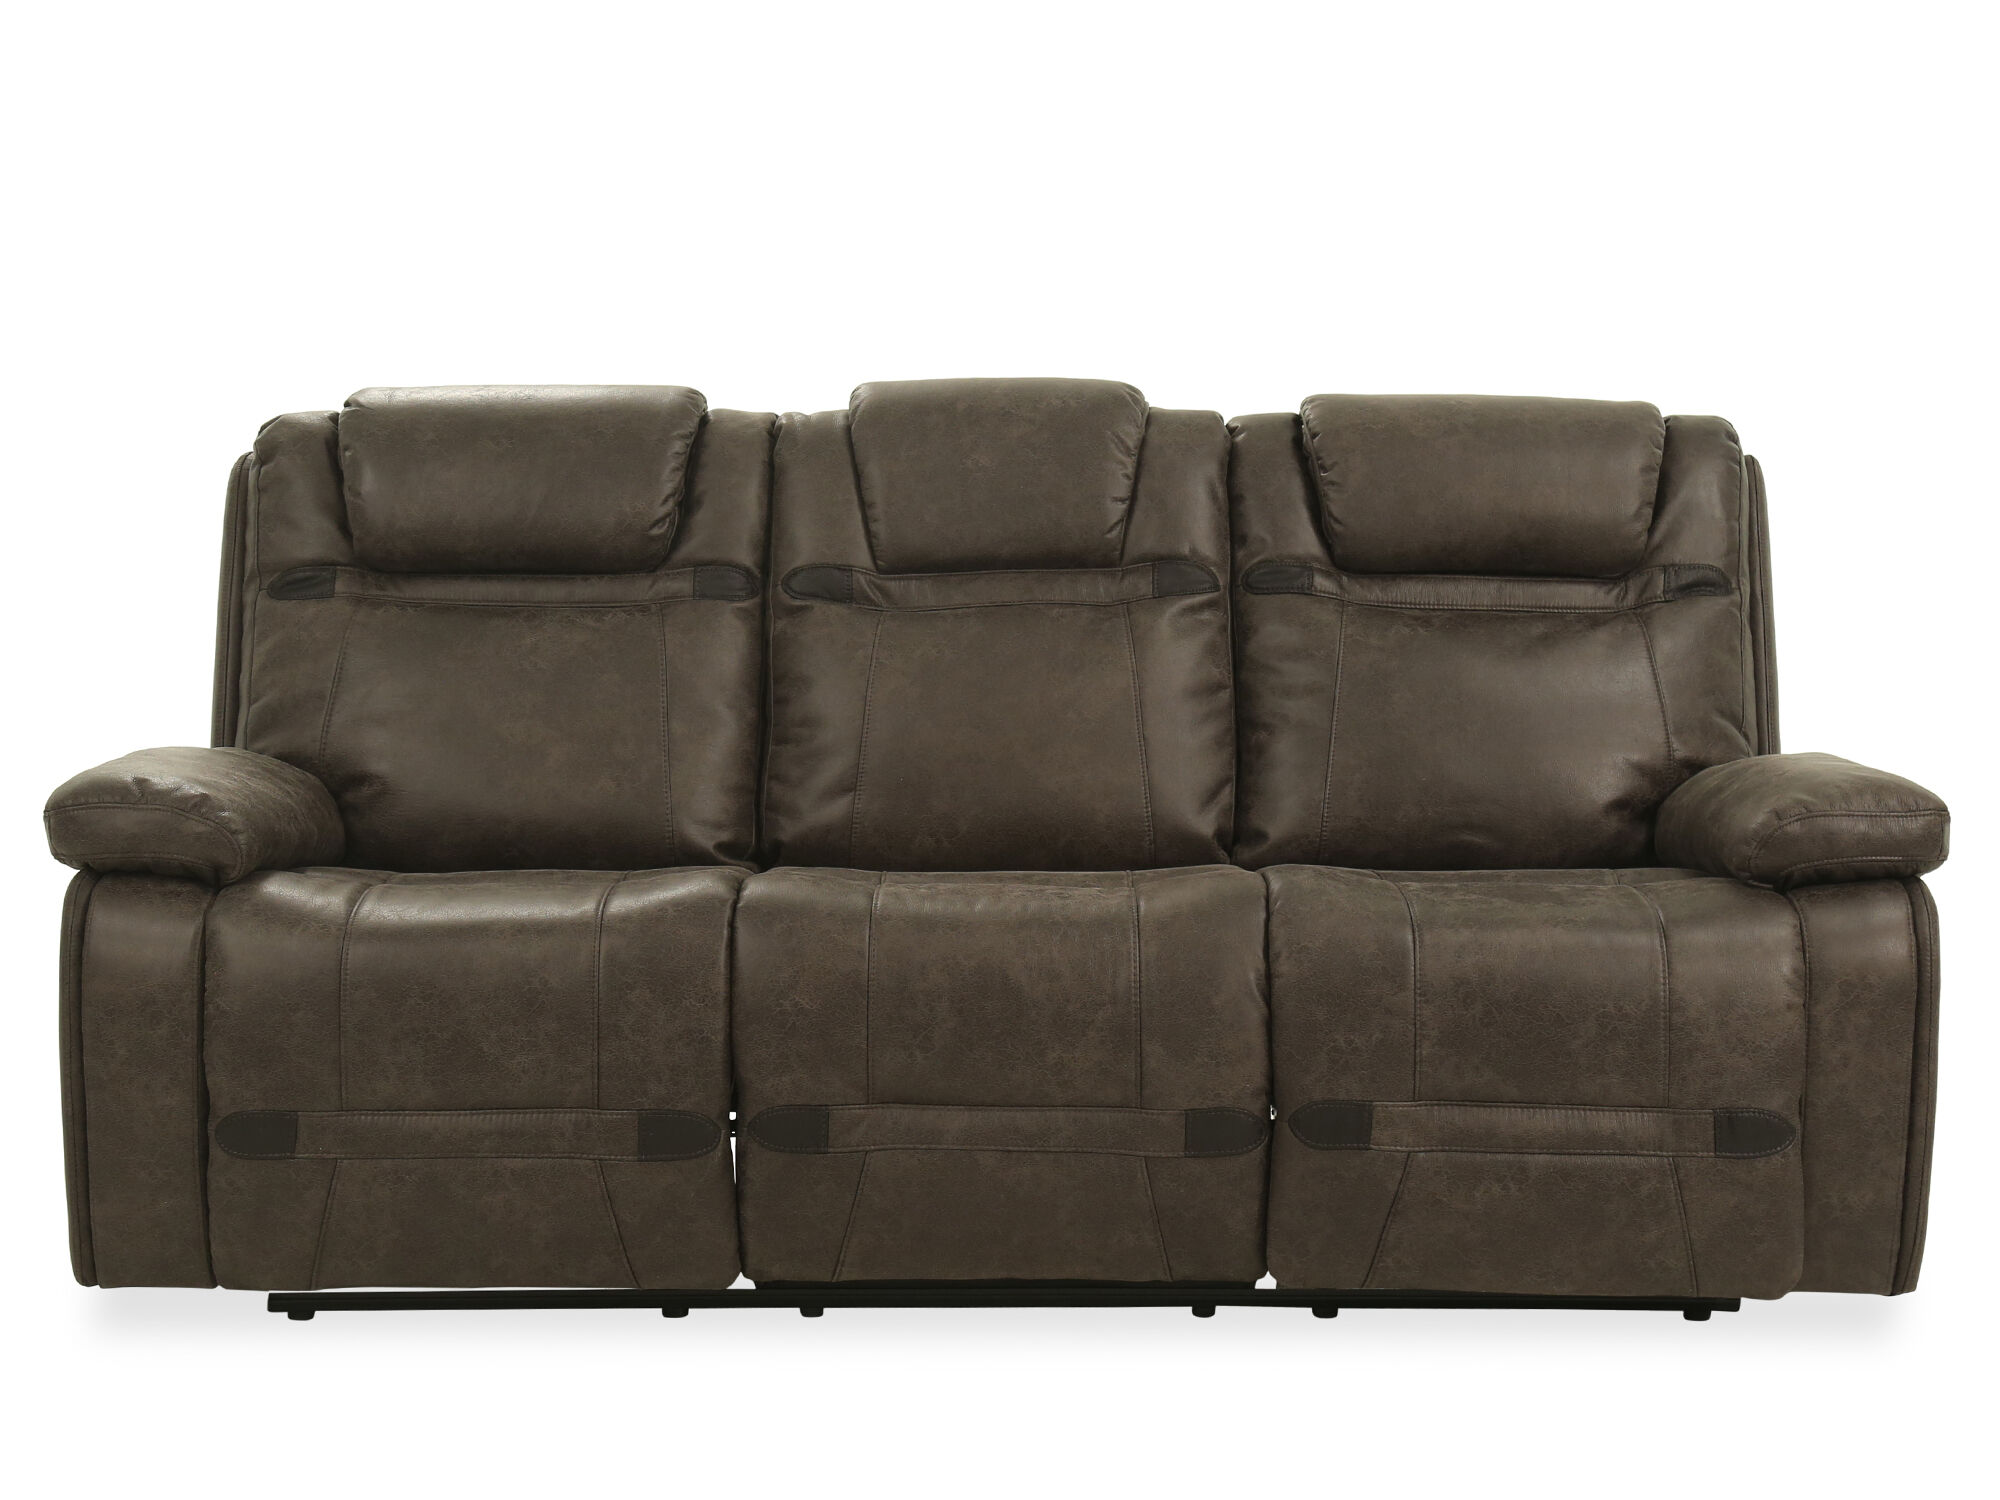 Images 87.5u0026quot; Leather Power Reclining Sofa In Grey 87.5u0026quot; Leather  Power Reclining Sofa In Grey